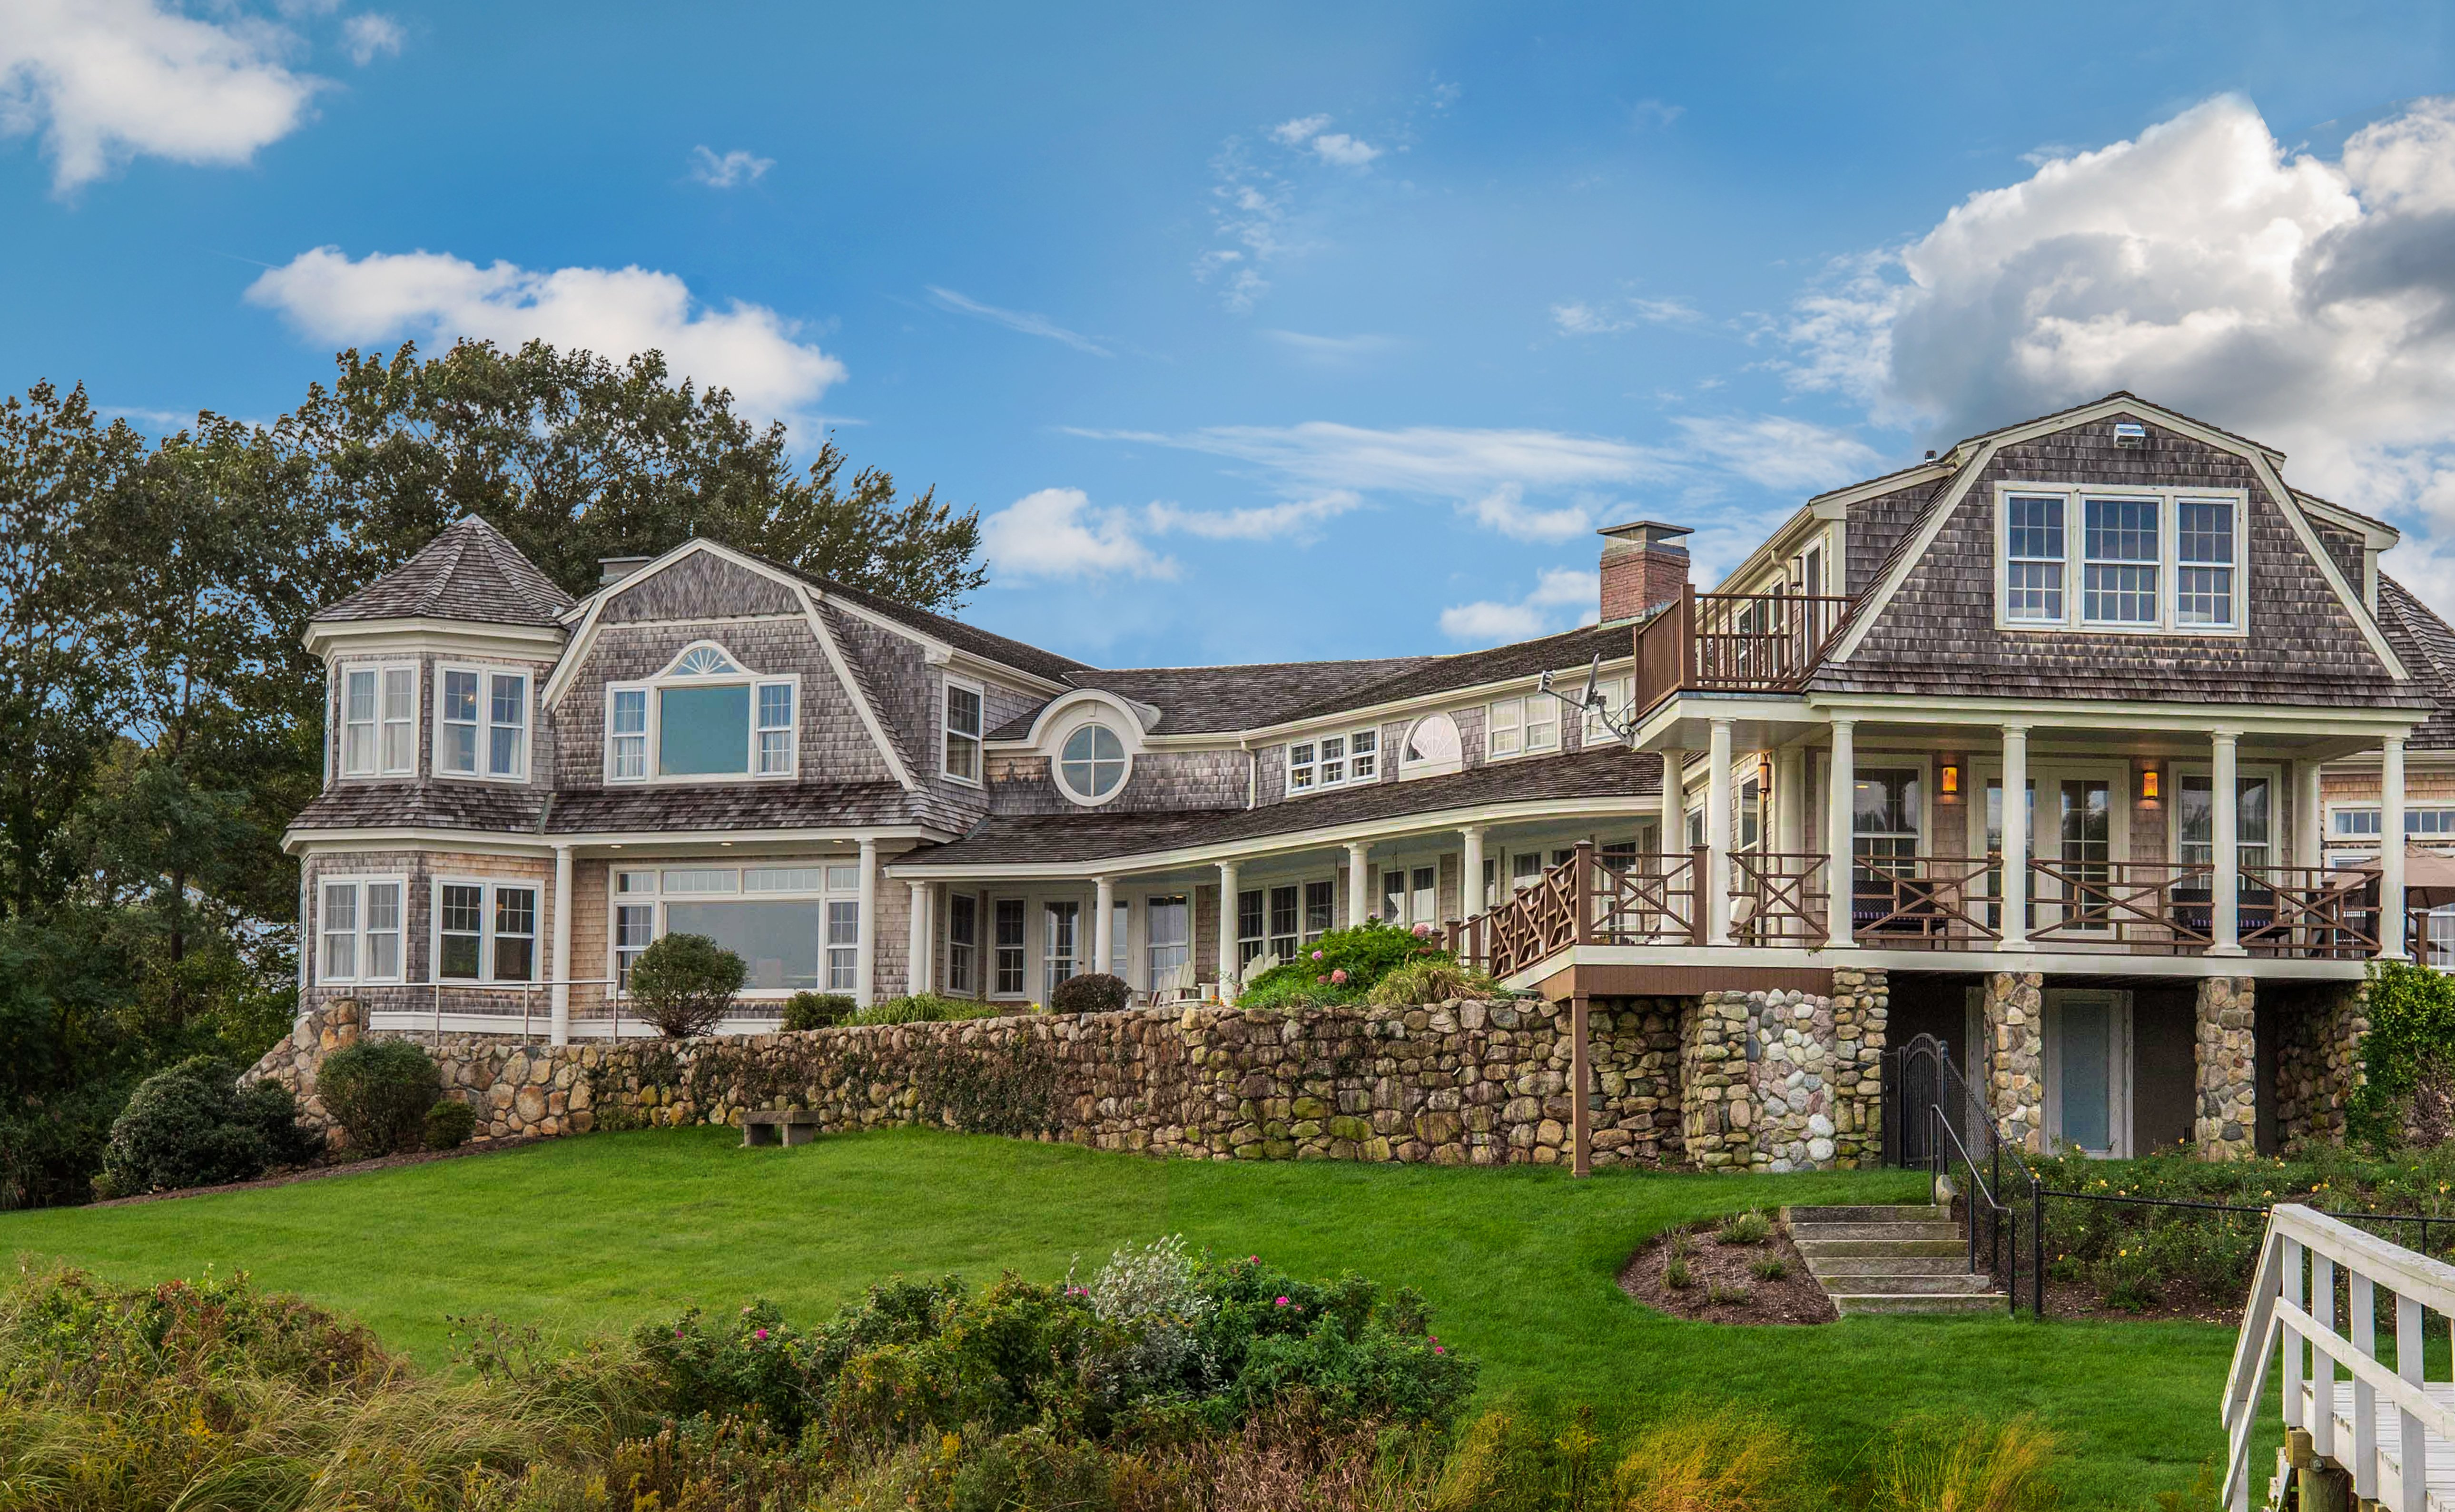 A History of 59 Pill Hill Lane - A Palatial Waterfront Estate Now For Sale in Duxbury at $8.9M